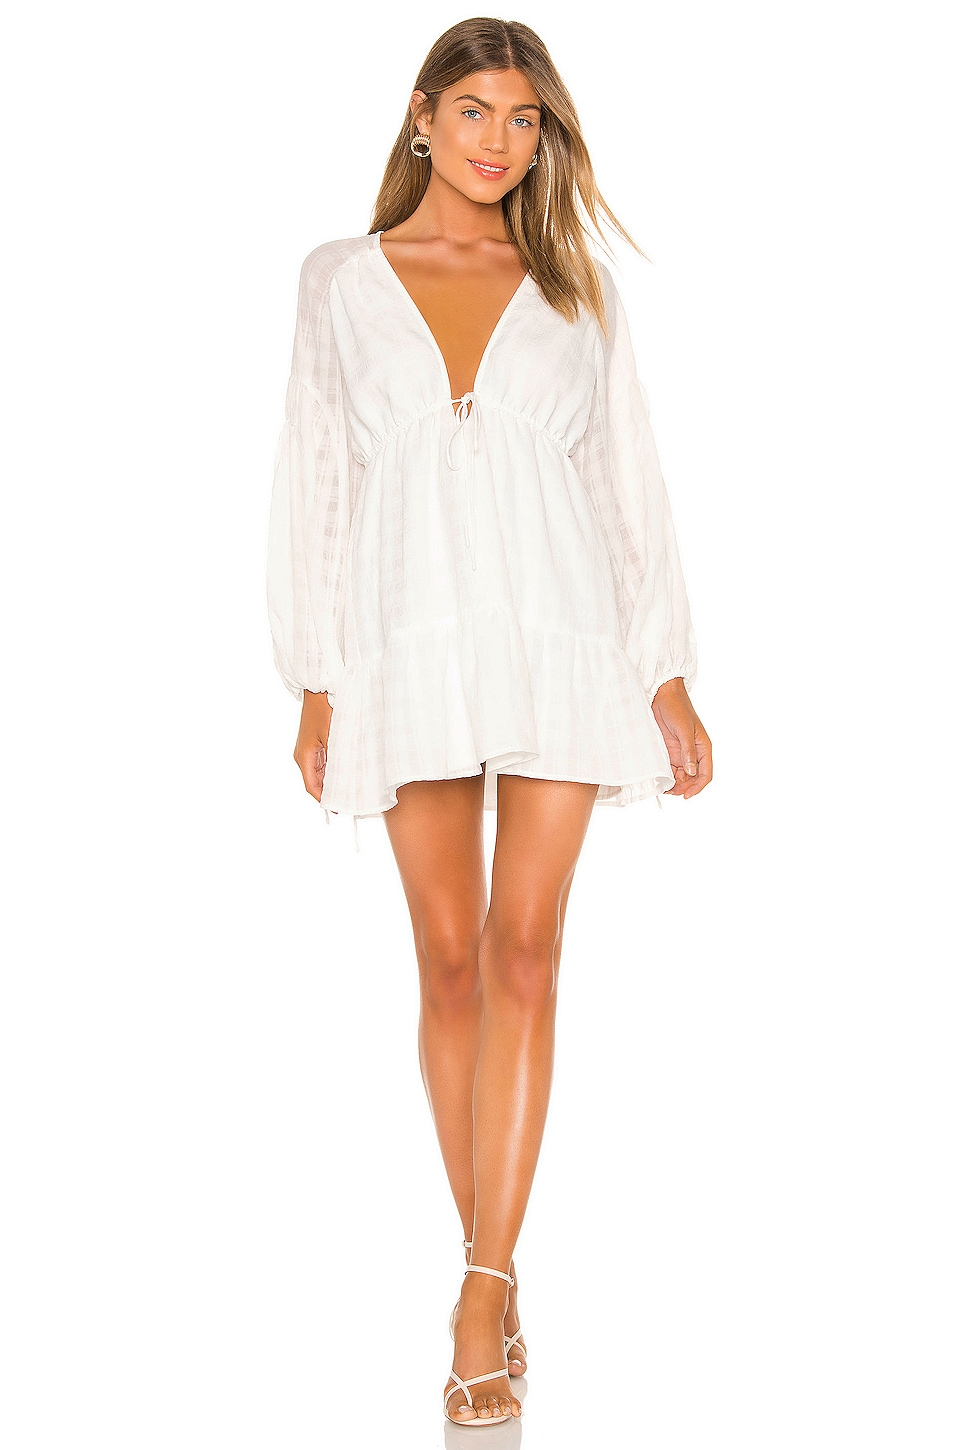 Finders Keepers Lucietti Mini Dress in Ivory